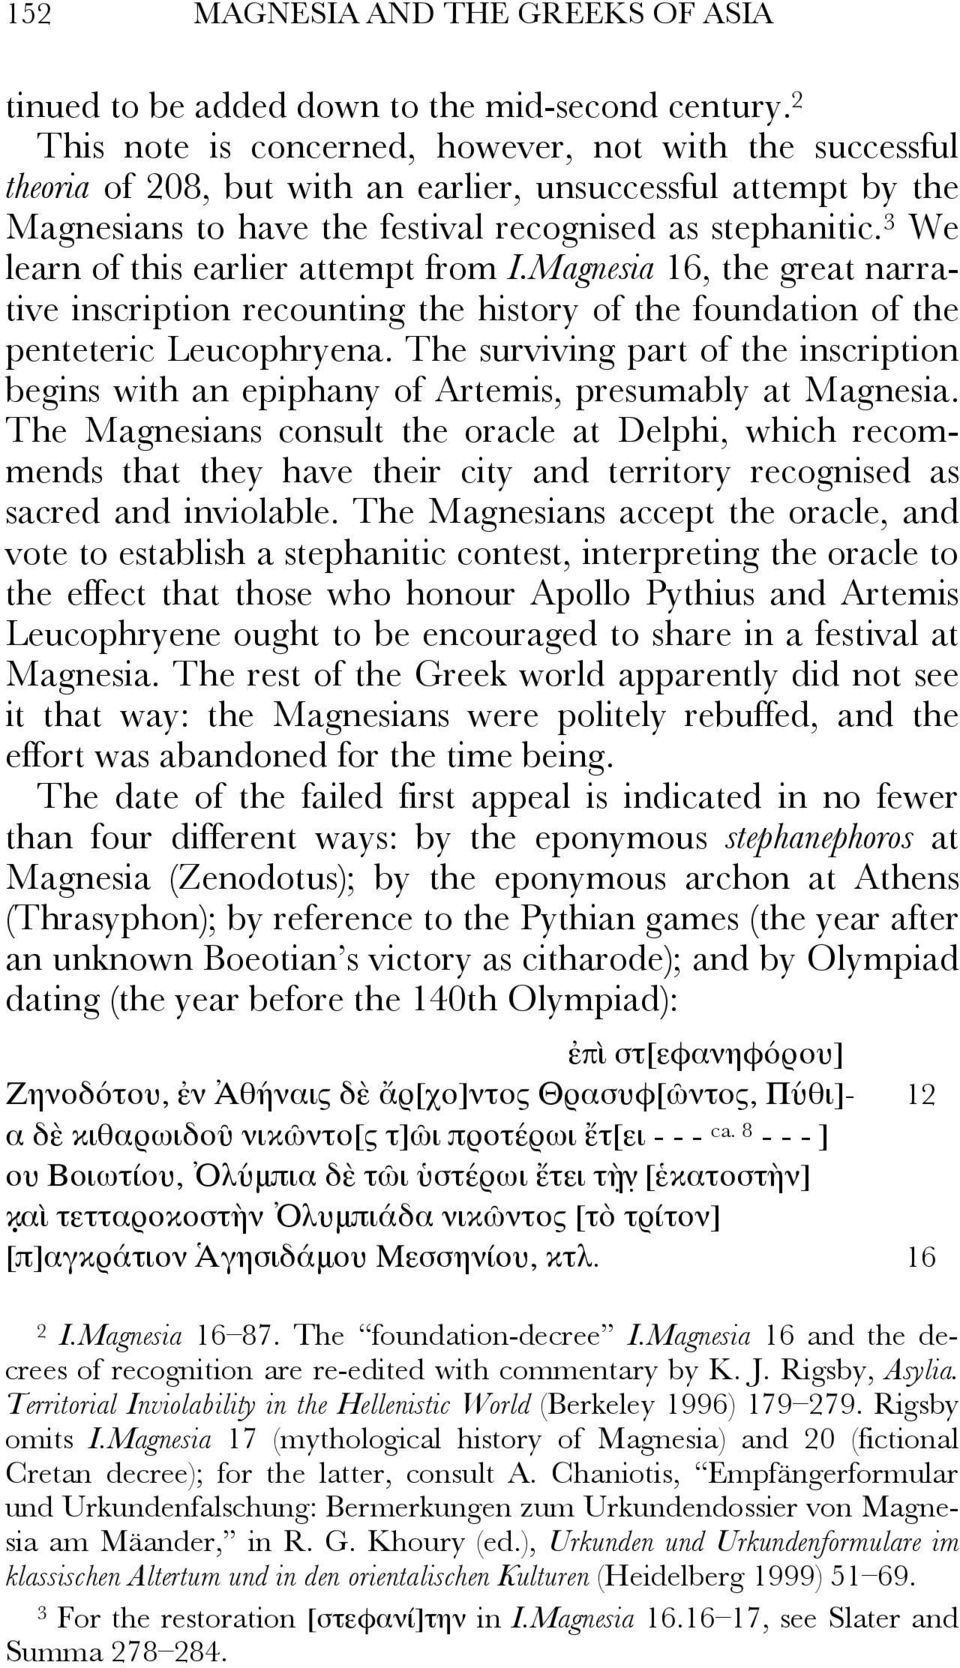 3 We learn of this earlier attempt from I.Magnesia 16, the great narrative inscription recounting the history of the foundation of the penteteric Leucophryena.